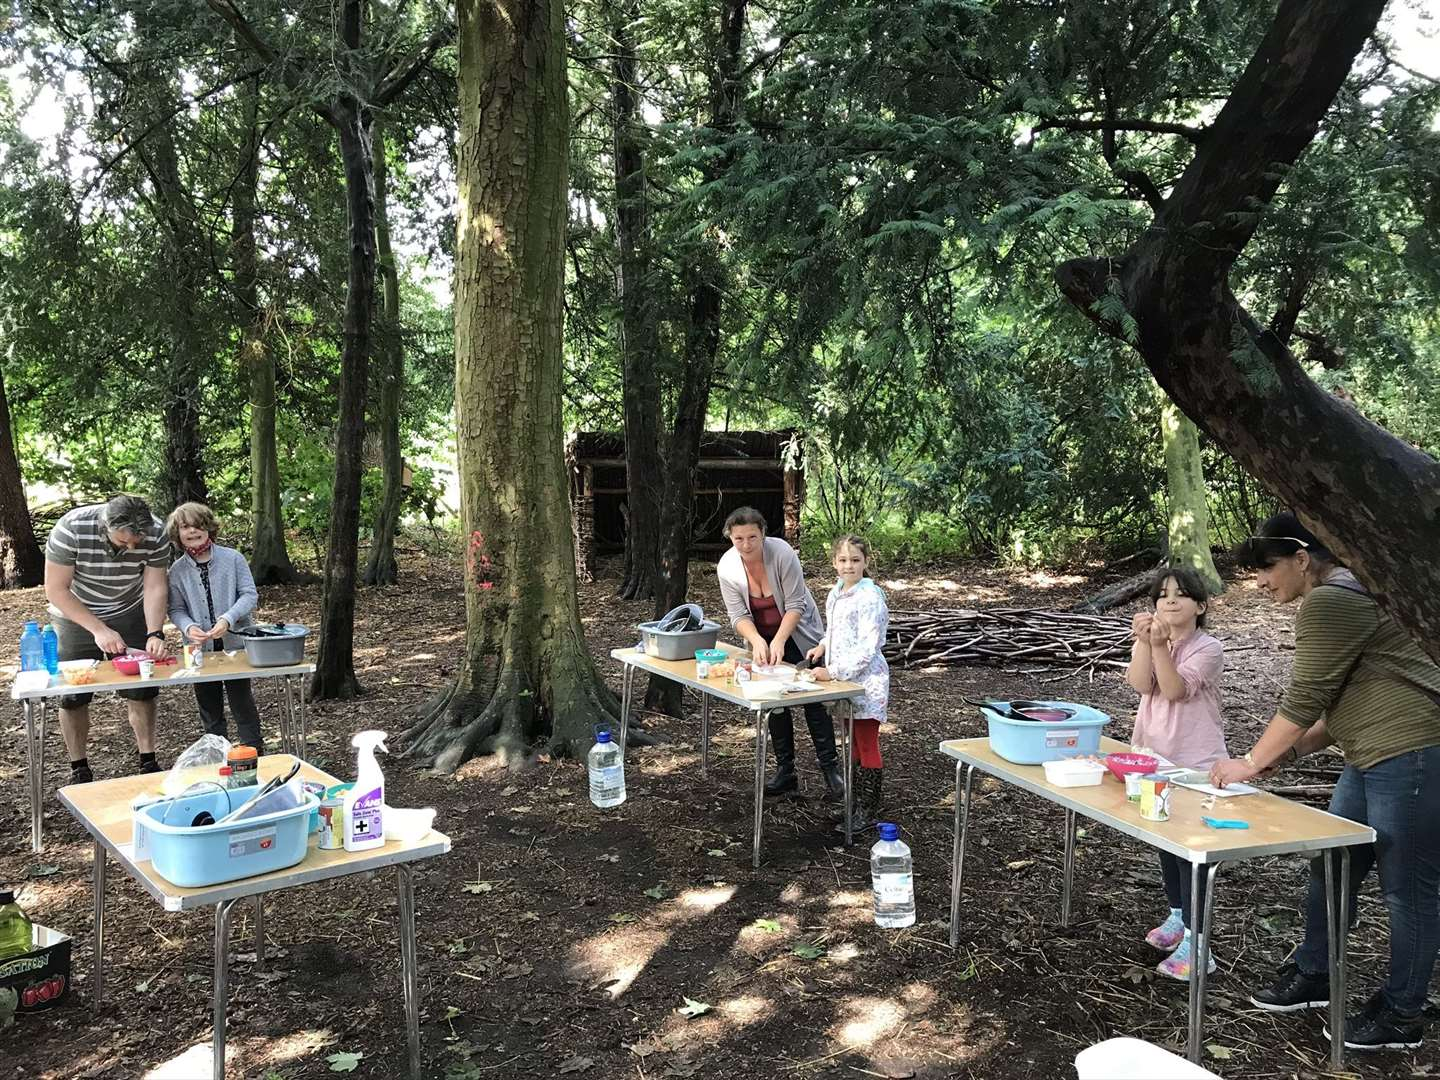 Explore Outdoors family cooking session in Nowton Park, Bury st edmunds (40831539)